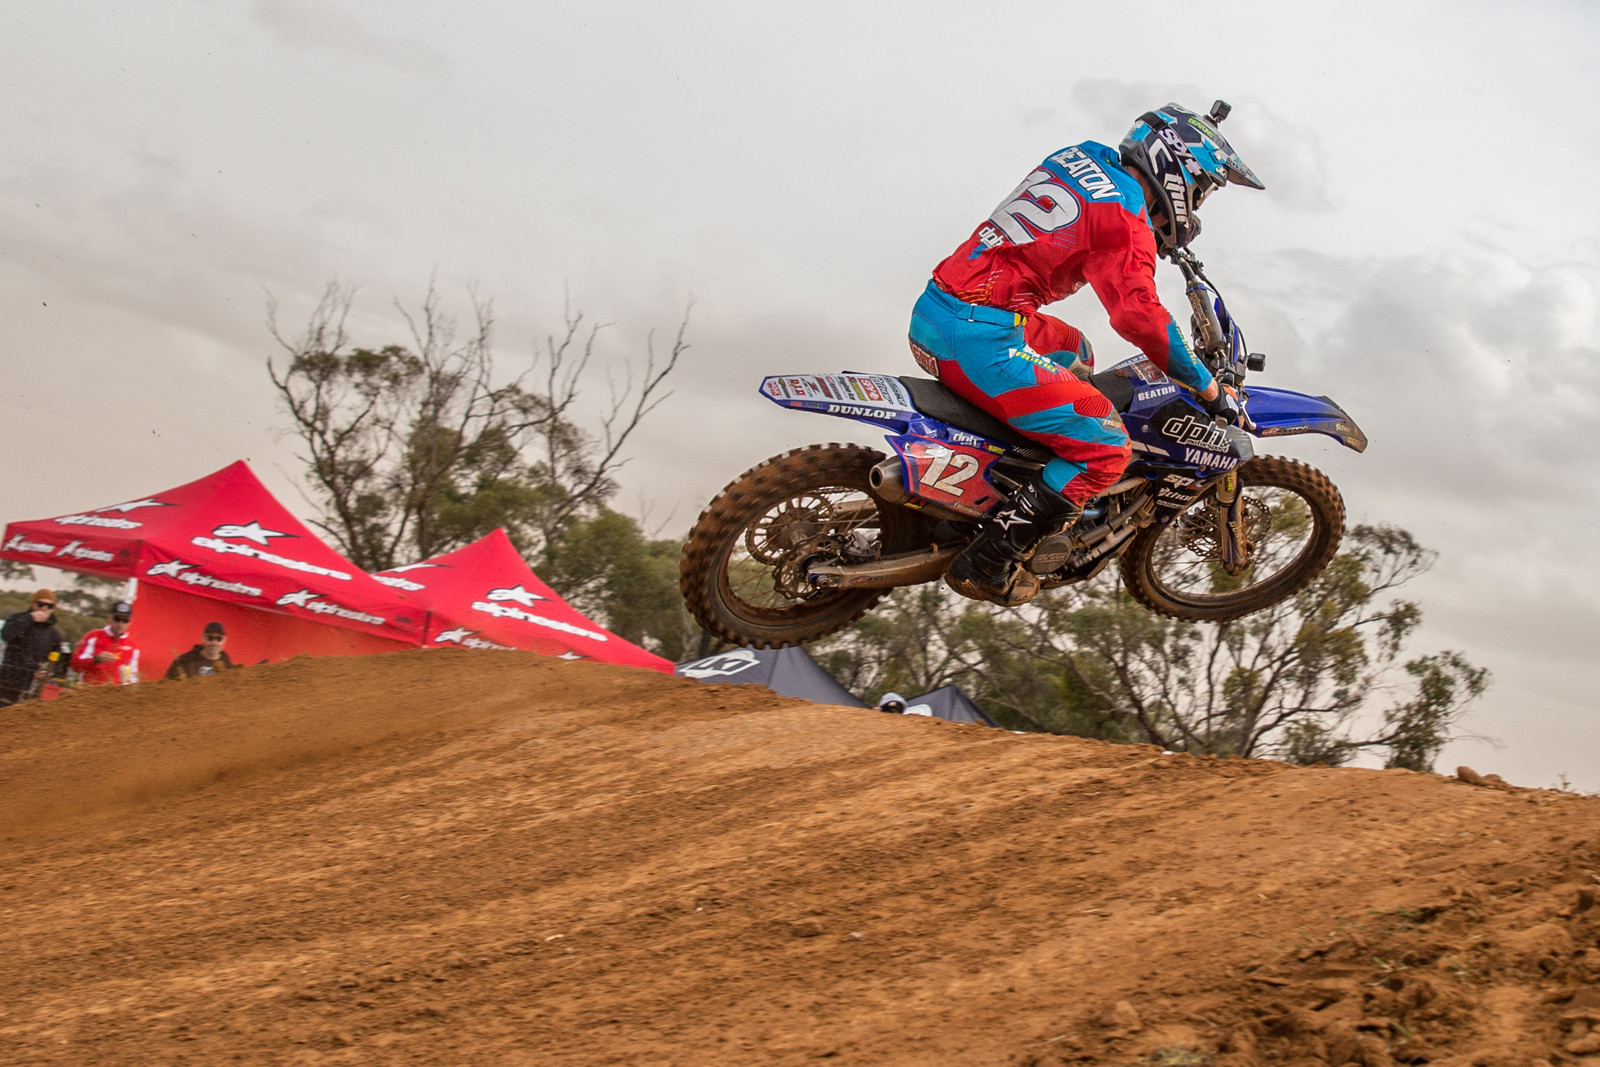 Jed Beaton - Australian Motul Mx Championships: Round 4, Murray Bridge - Motocross Pictures - Vital MX